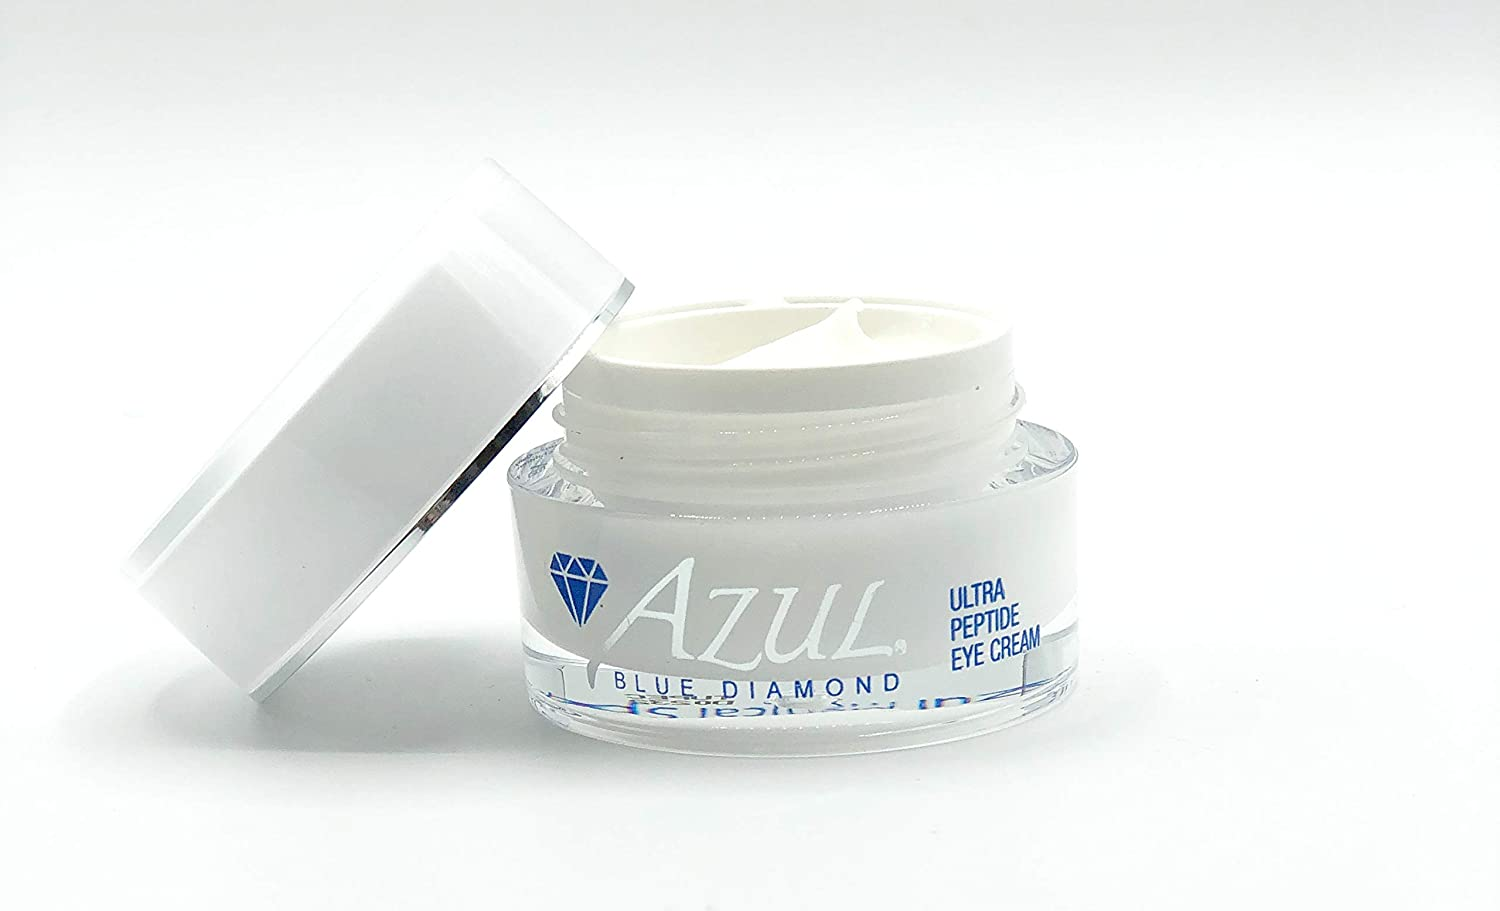 Azul Blue Diamond Ultra Peptide Eye Cream For Anti Aging, Easing Eye Bags, Dark Circles And Fine Wrinkles, Advanced Eye Treatment With Skin-nourishing Peptides, Aloe And Jojoba (0.5 fl oz)